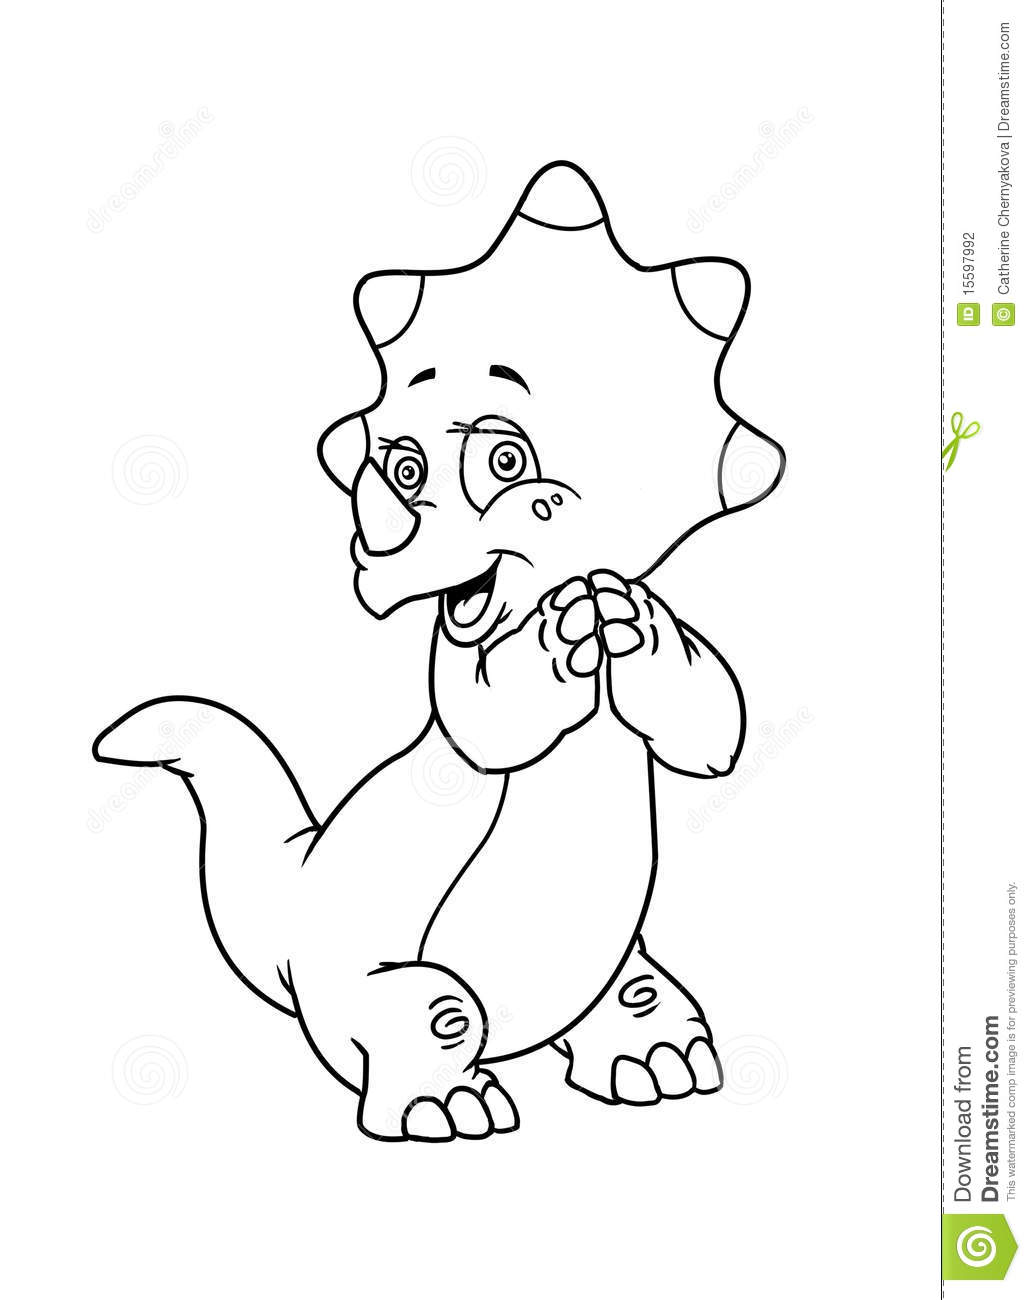 girl dinosaur coloring pages triceratops coloring pages dinosaur 101 coloring dinosaur coloring pages girl